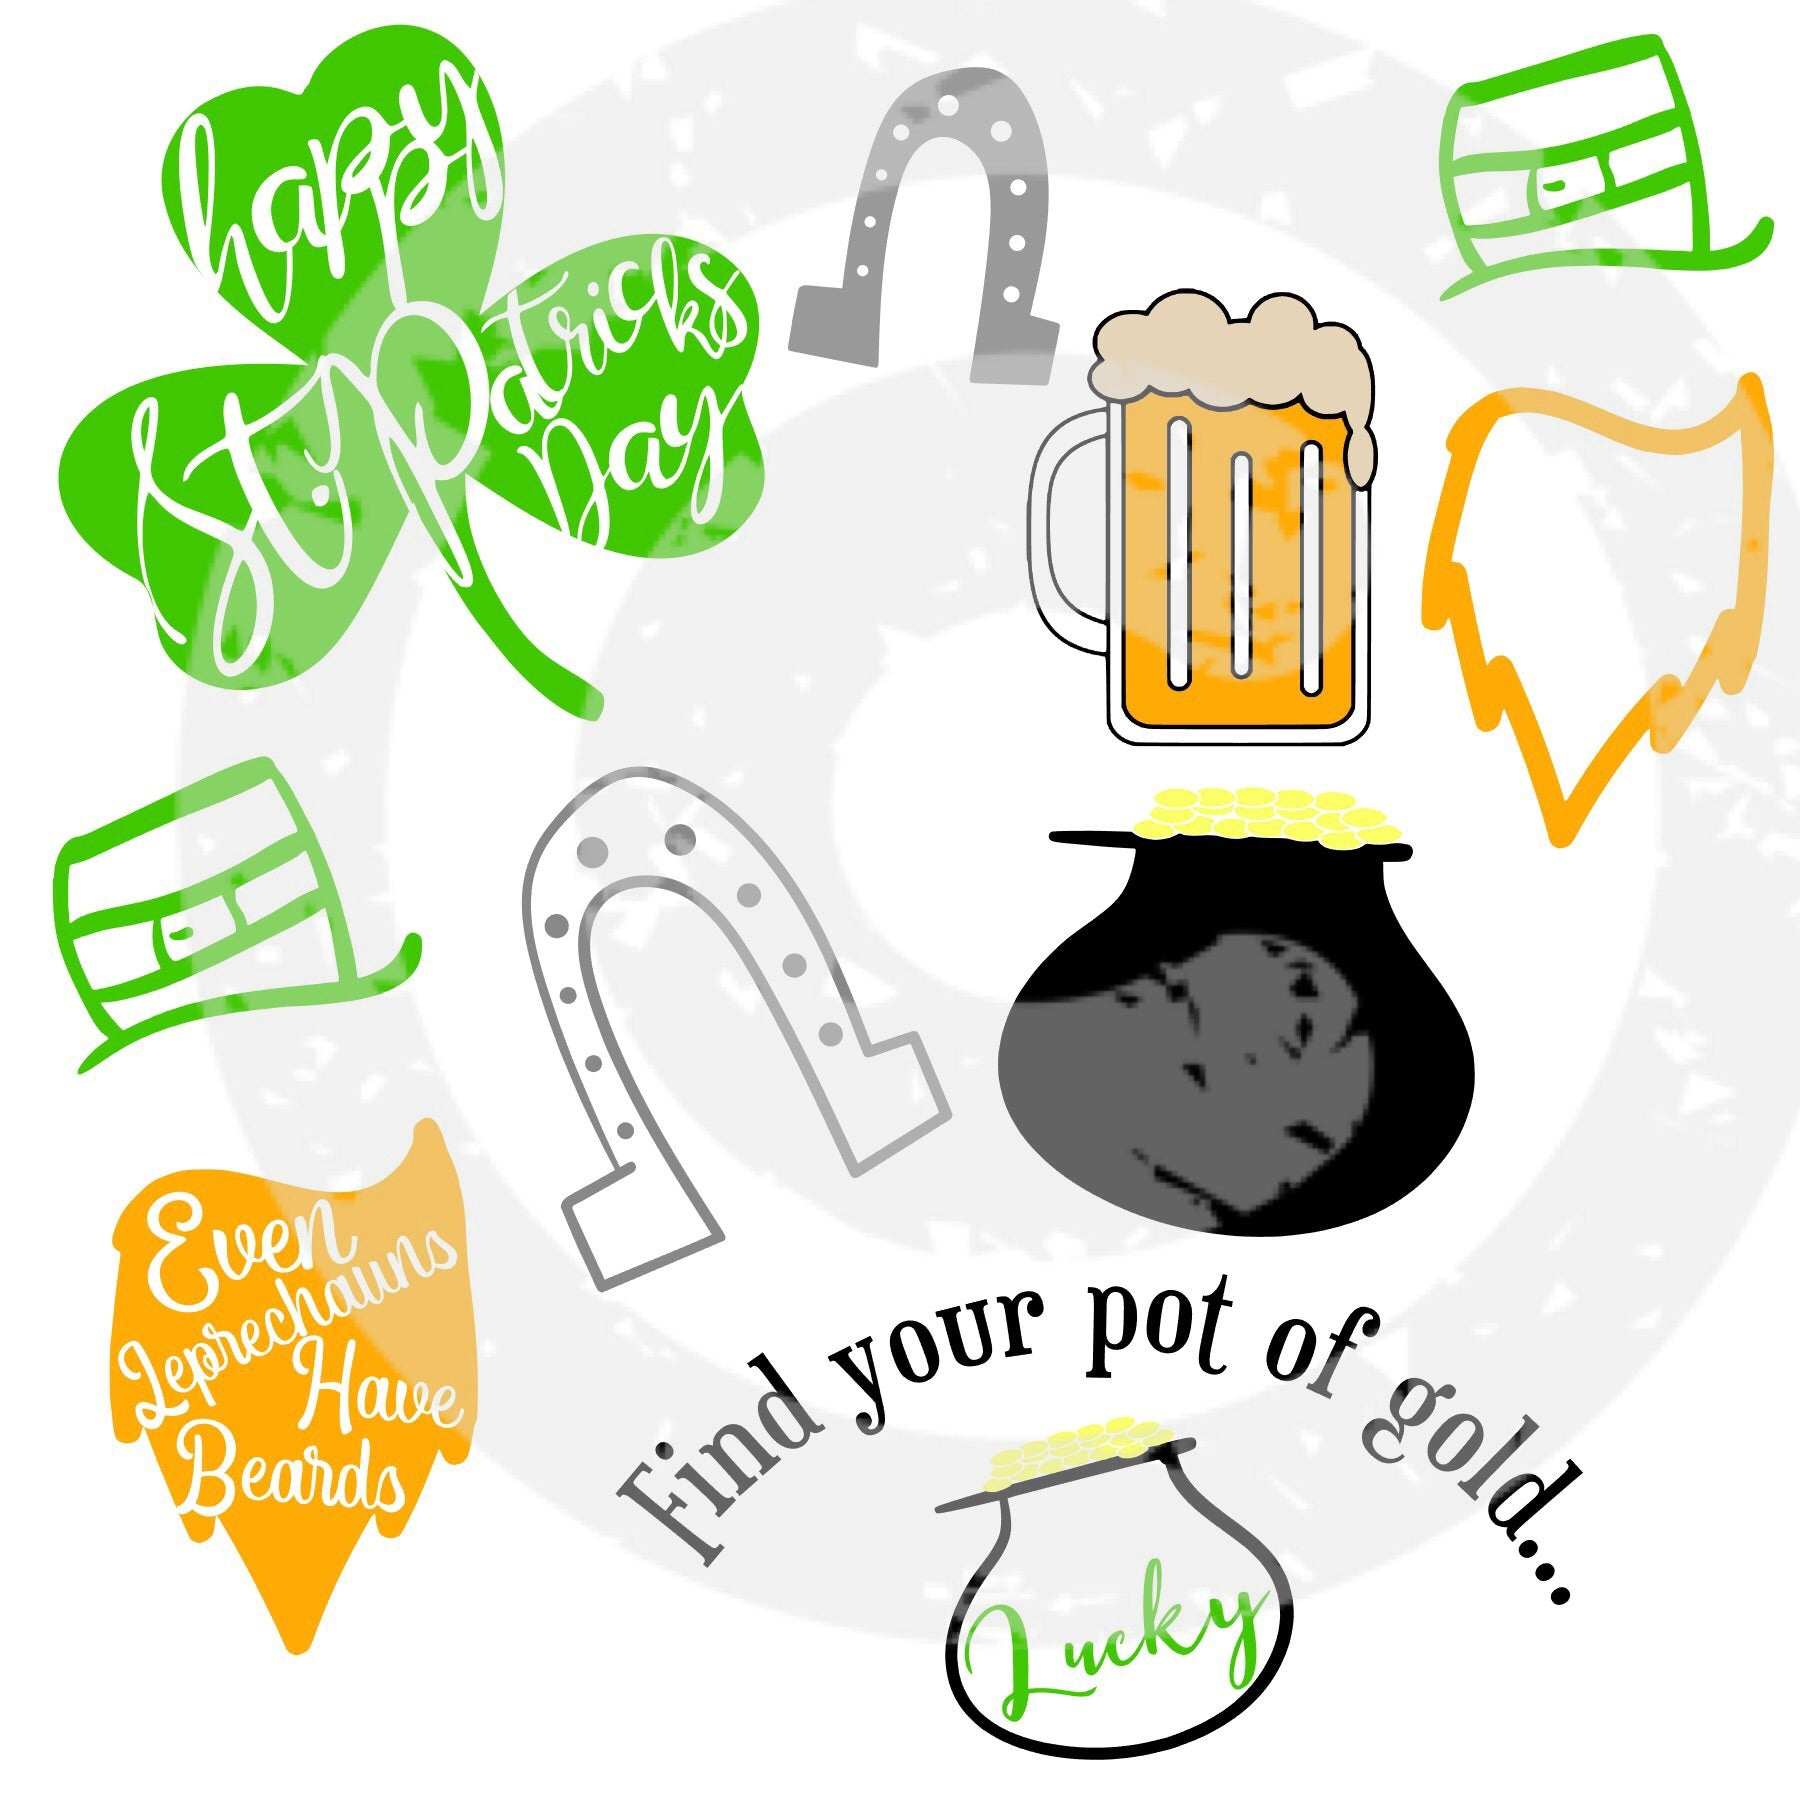 St. Patrick's Day SVG Bundle - JPIBlanks.com